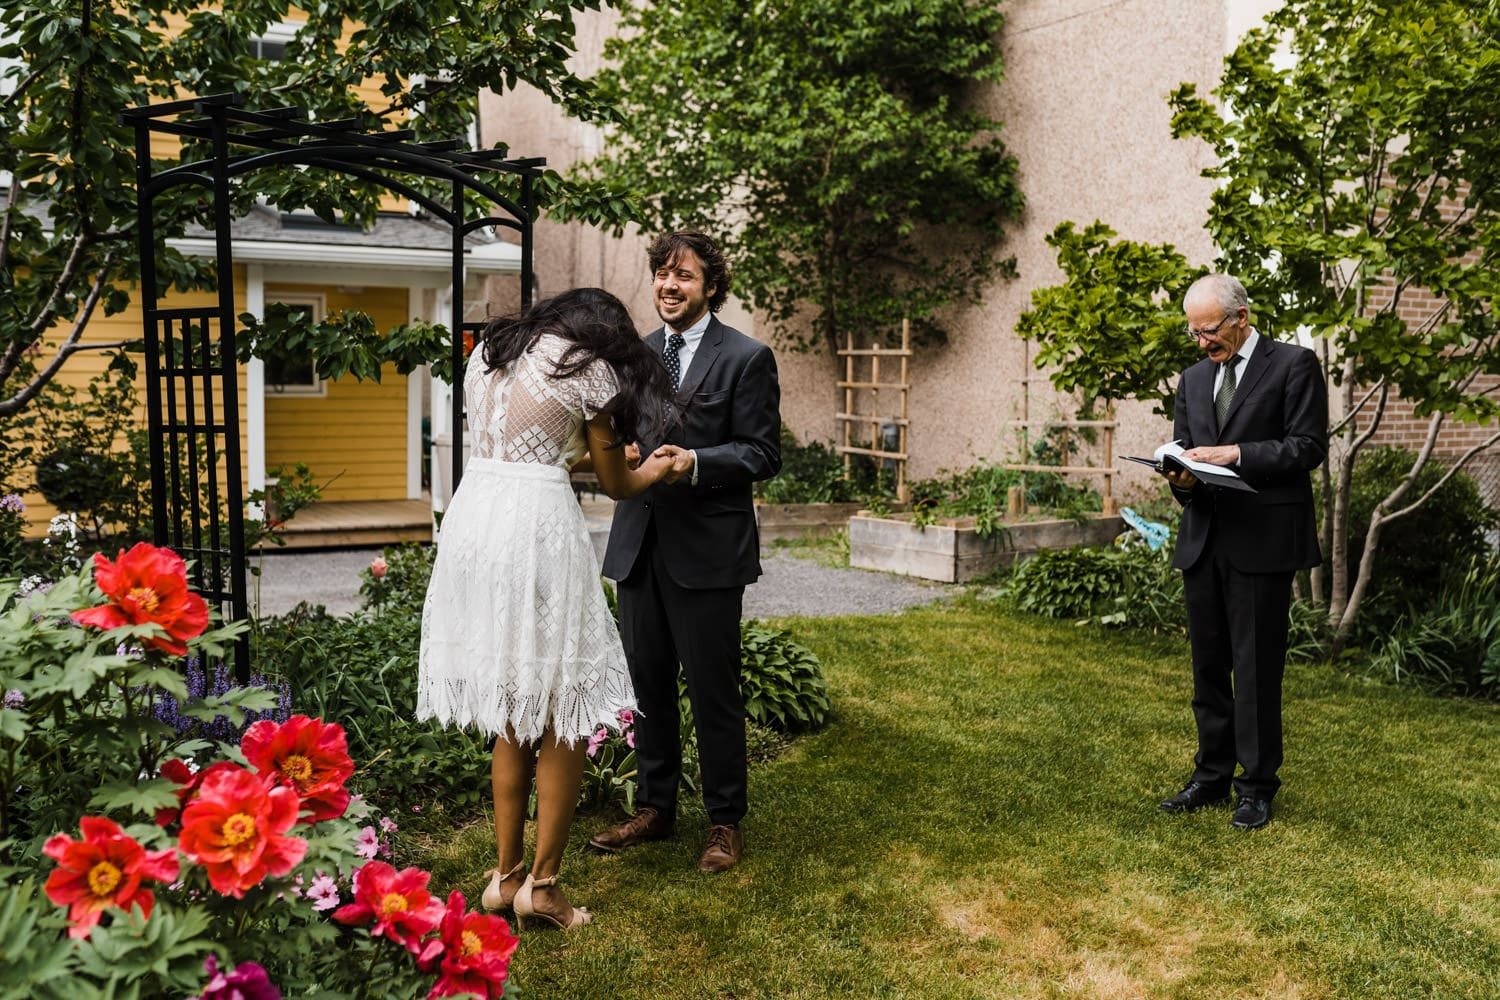 bride and groom laugh together during wedding ceremony - small backyard ceremony